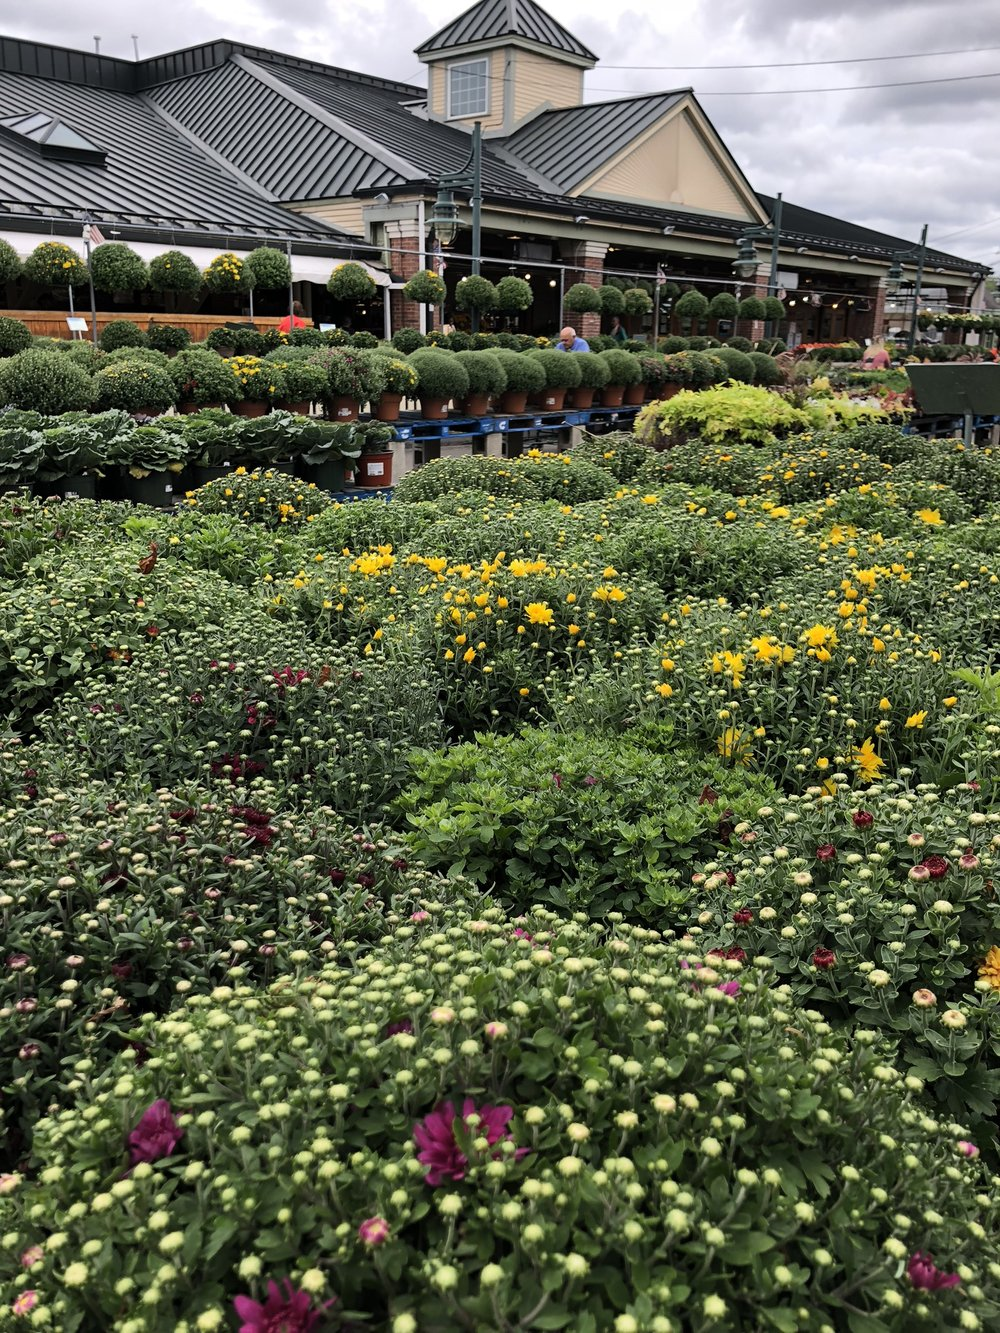 Mums have arrived at Russo's!